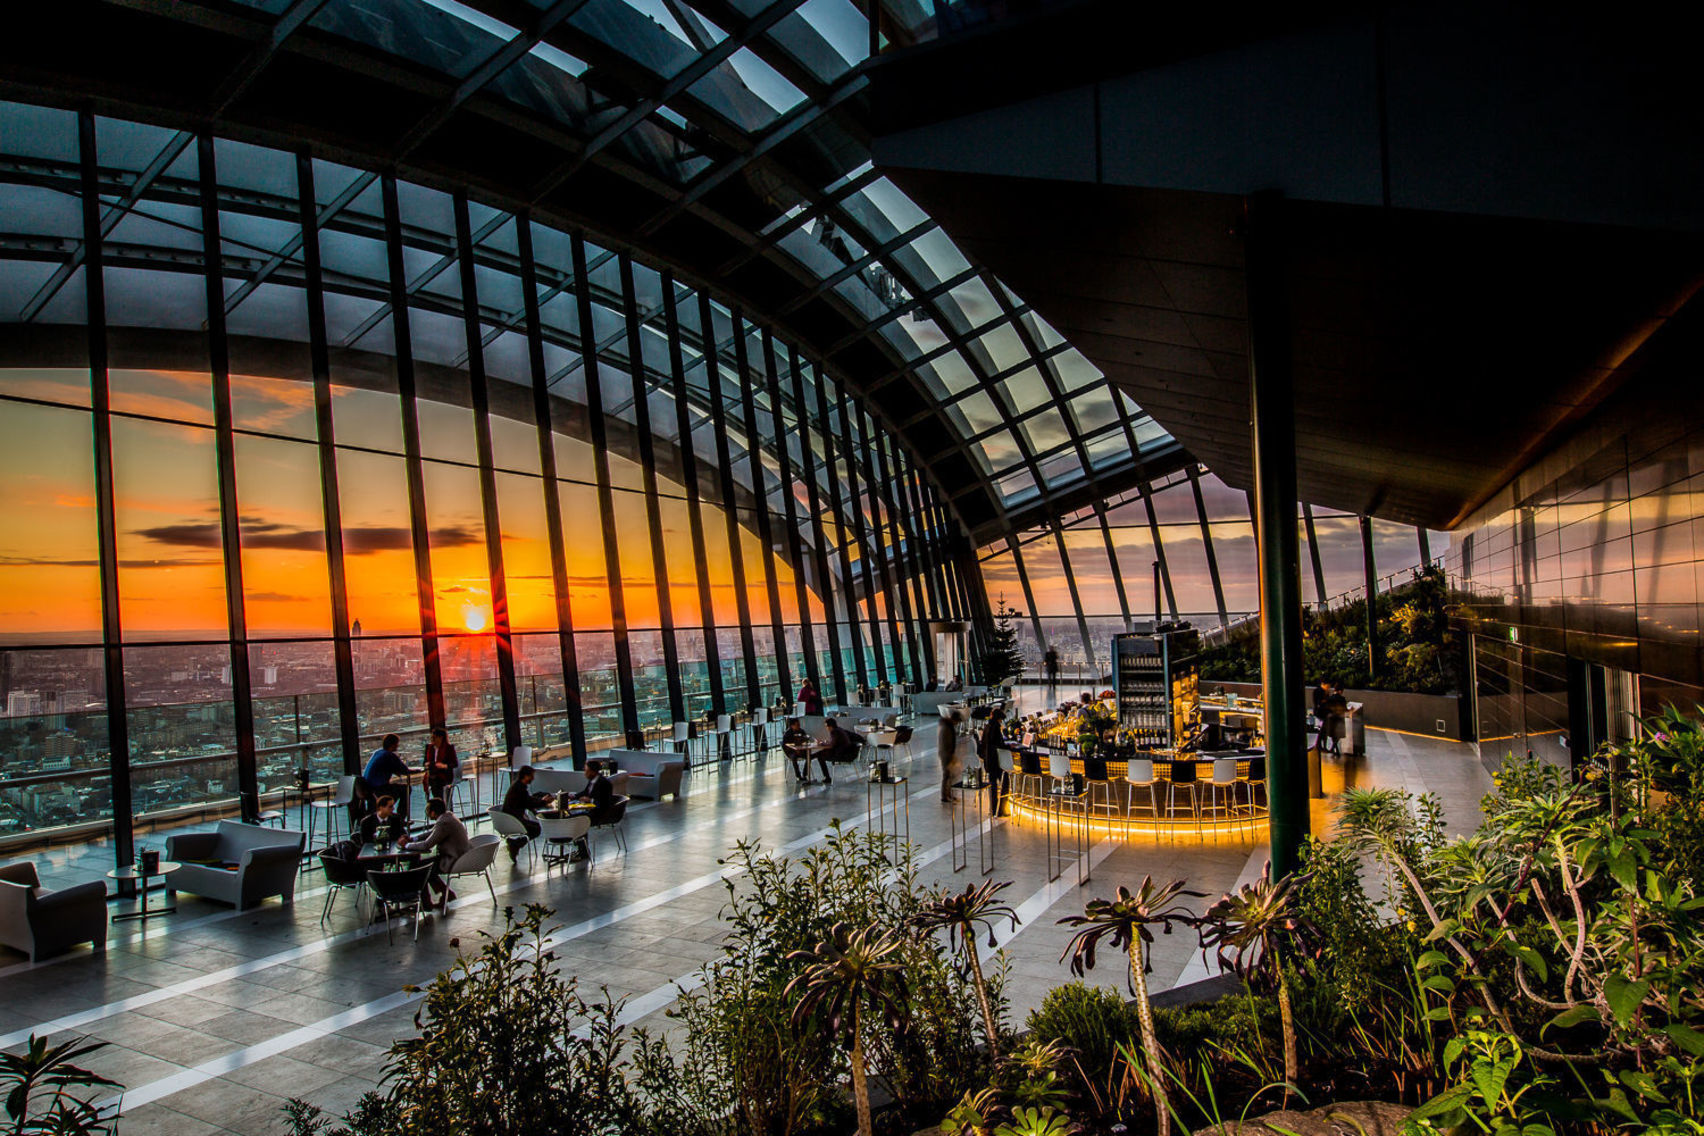 The event space at the sky garden in London